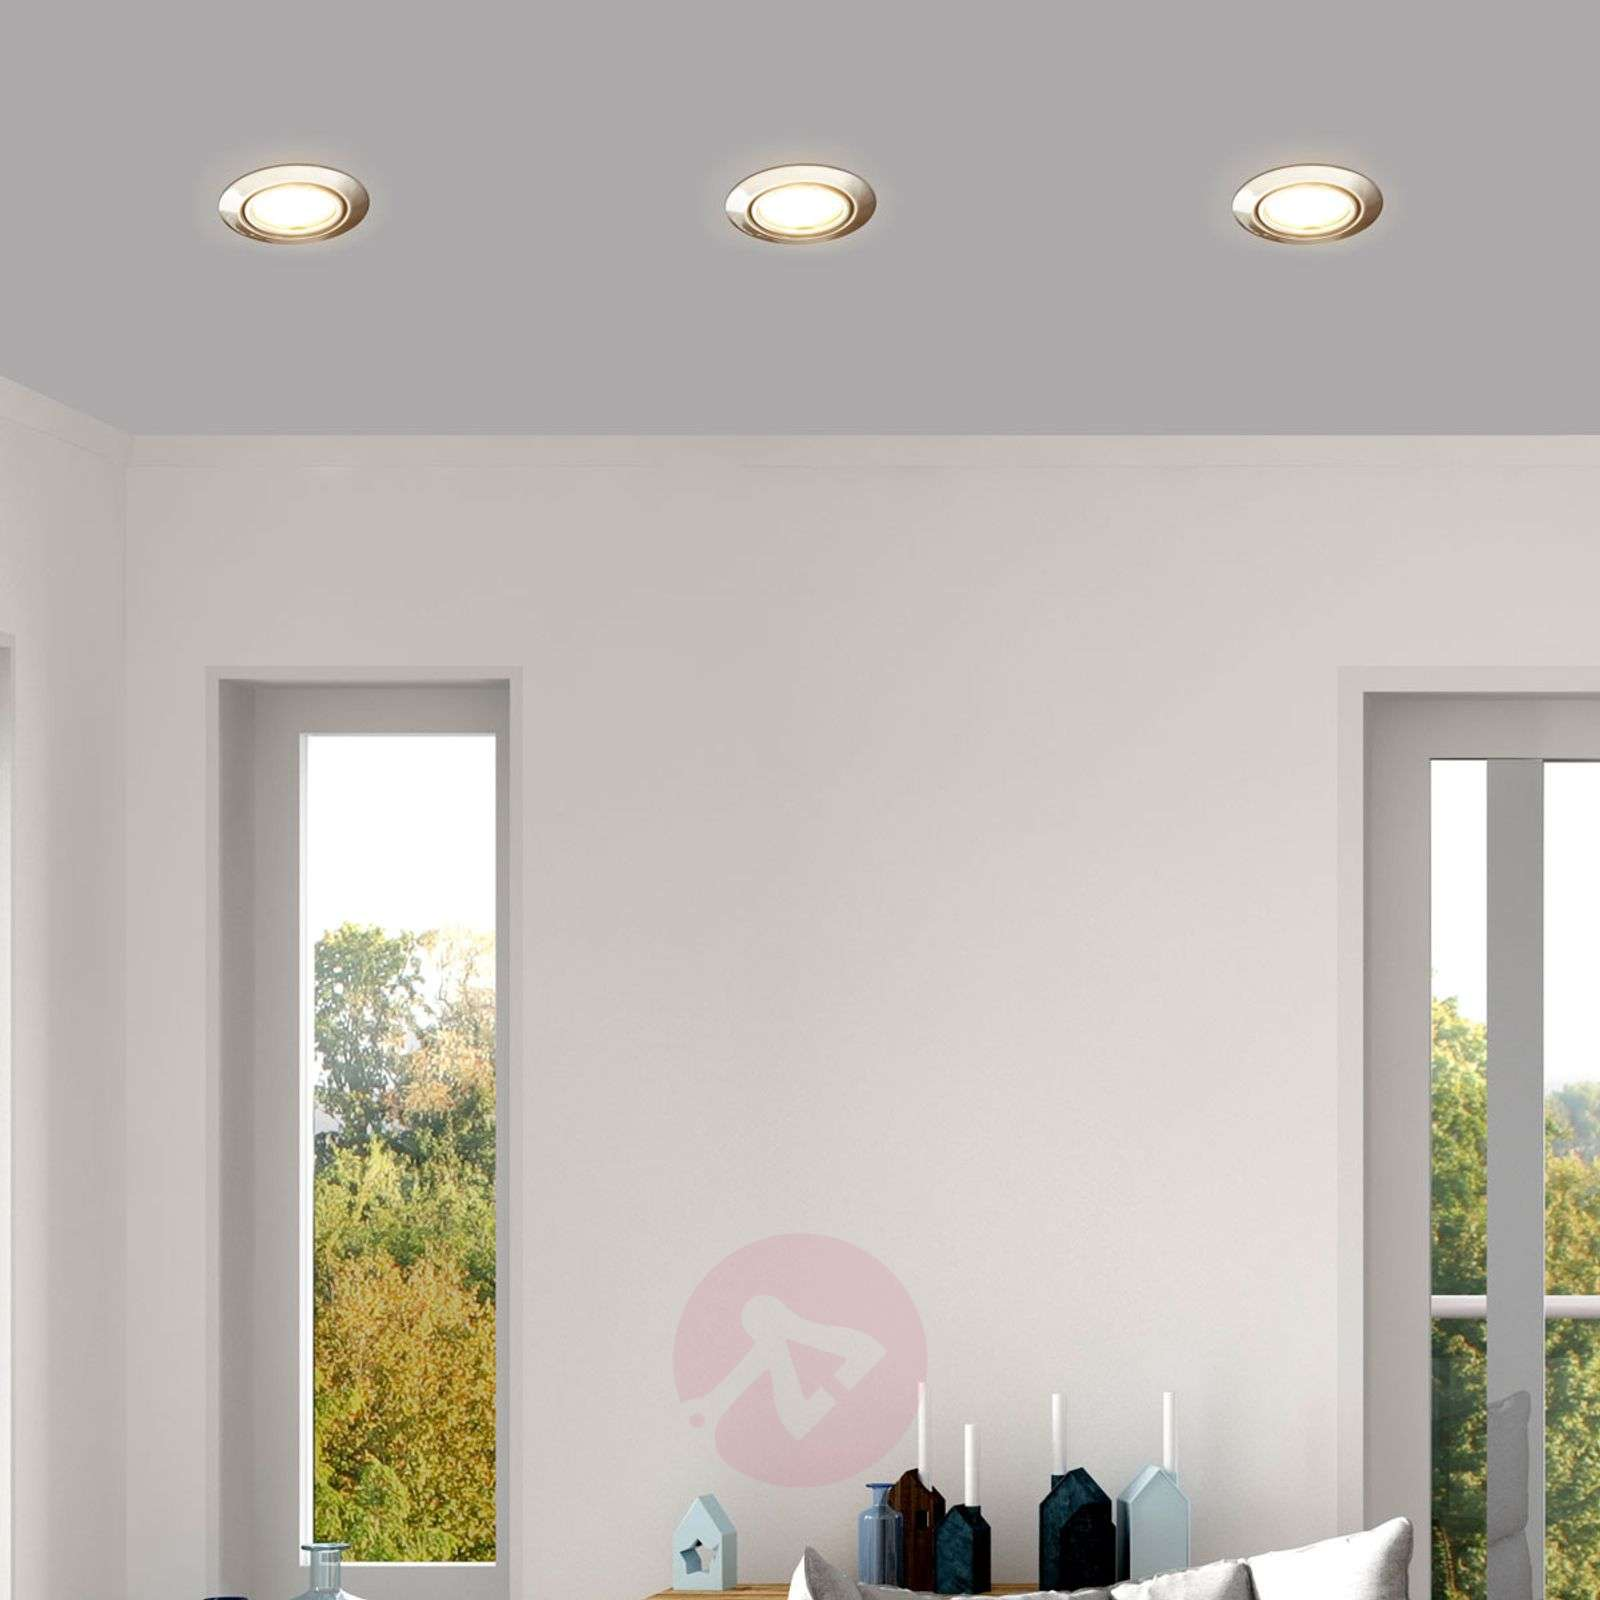 Set of 3 juna easydim recessed lights with led lights set of 3 juna easydim recessed lights with led 1558079 02 mozeypictures Image collections